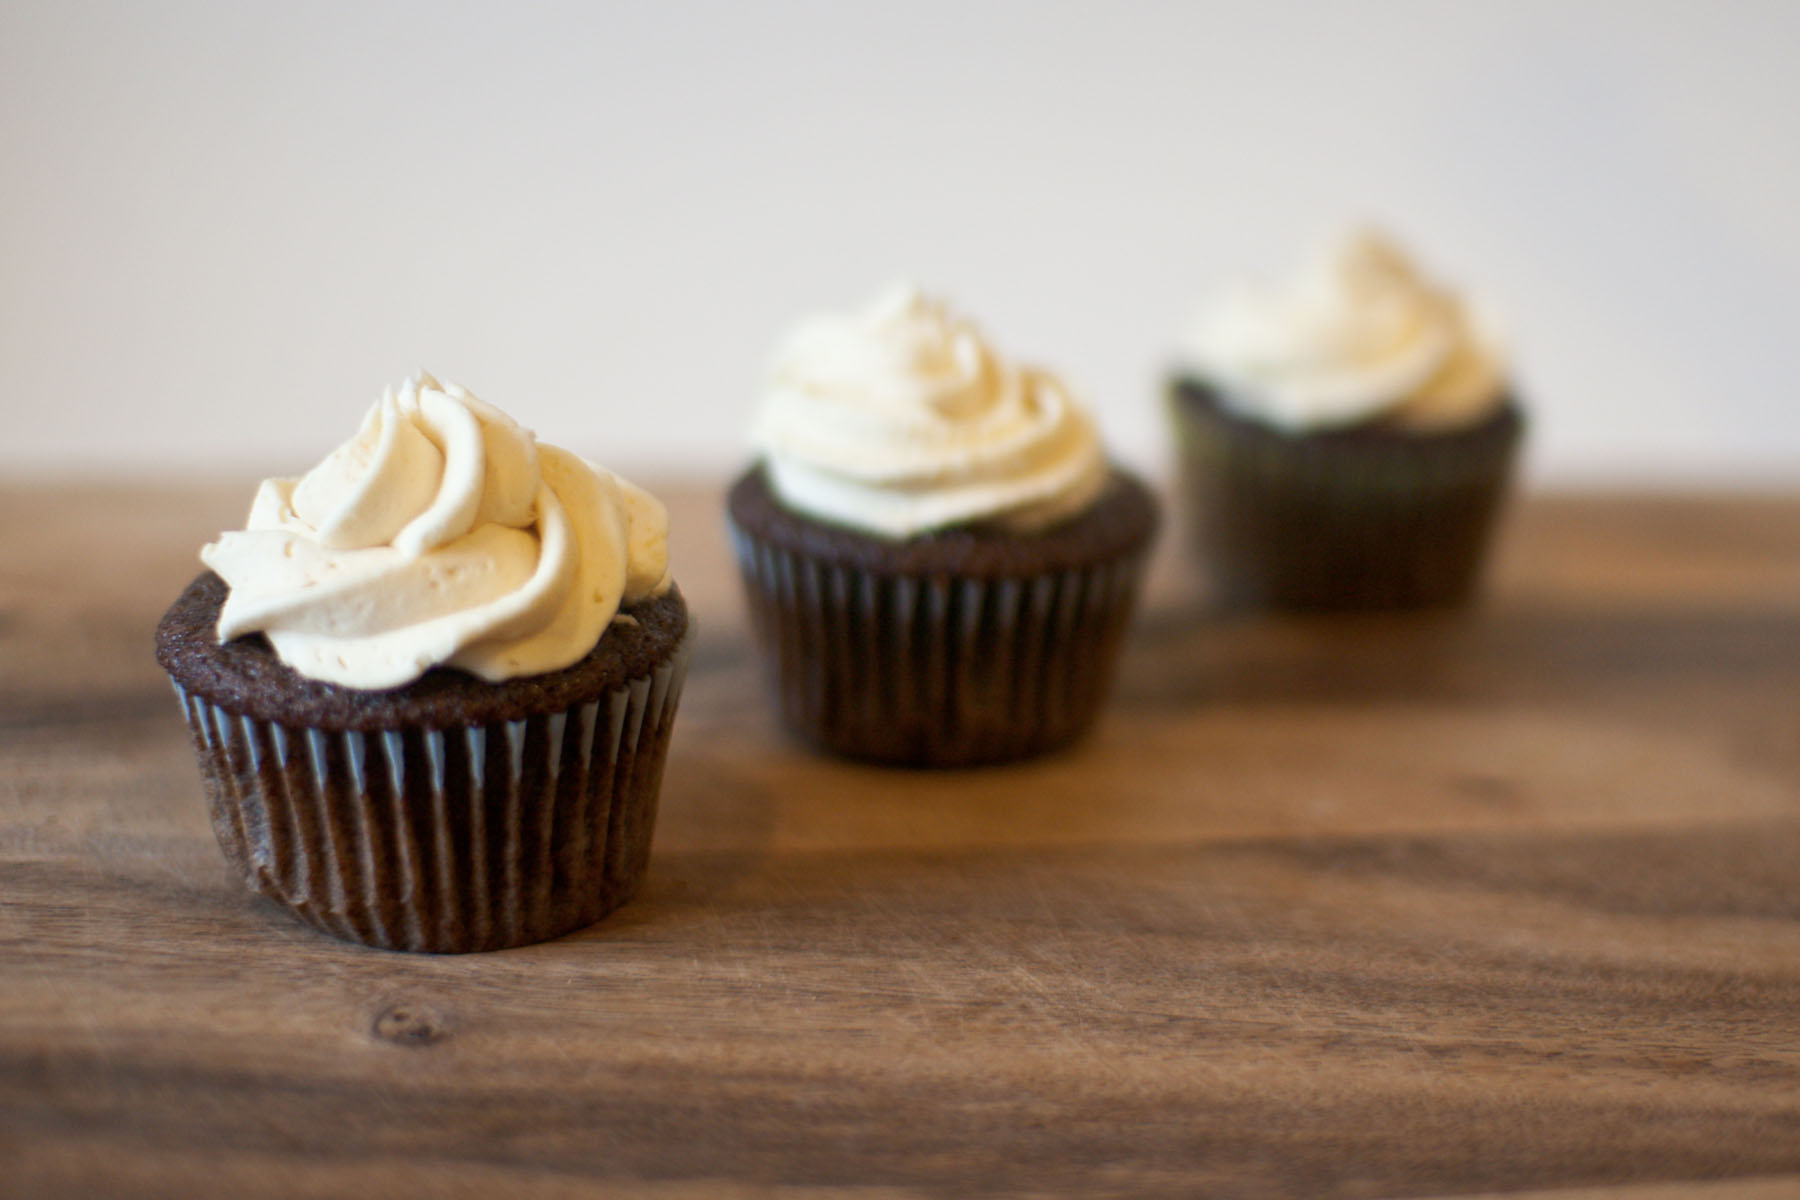 Imperial Stout Cupcakes with Salted Caramel Buttercream